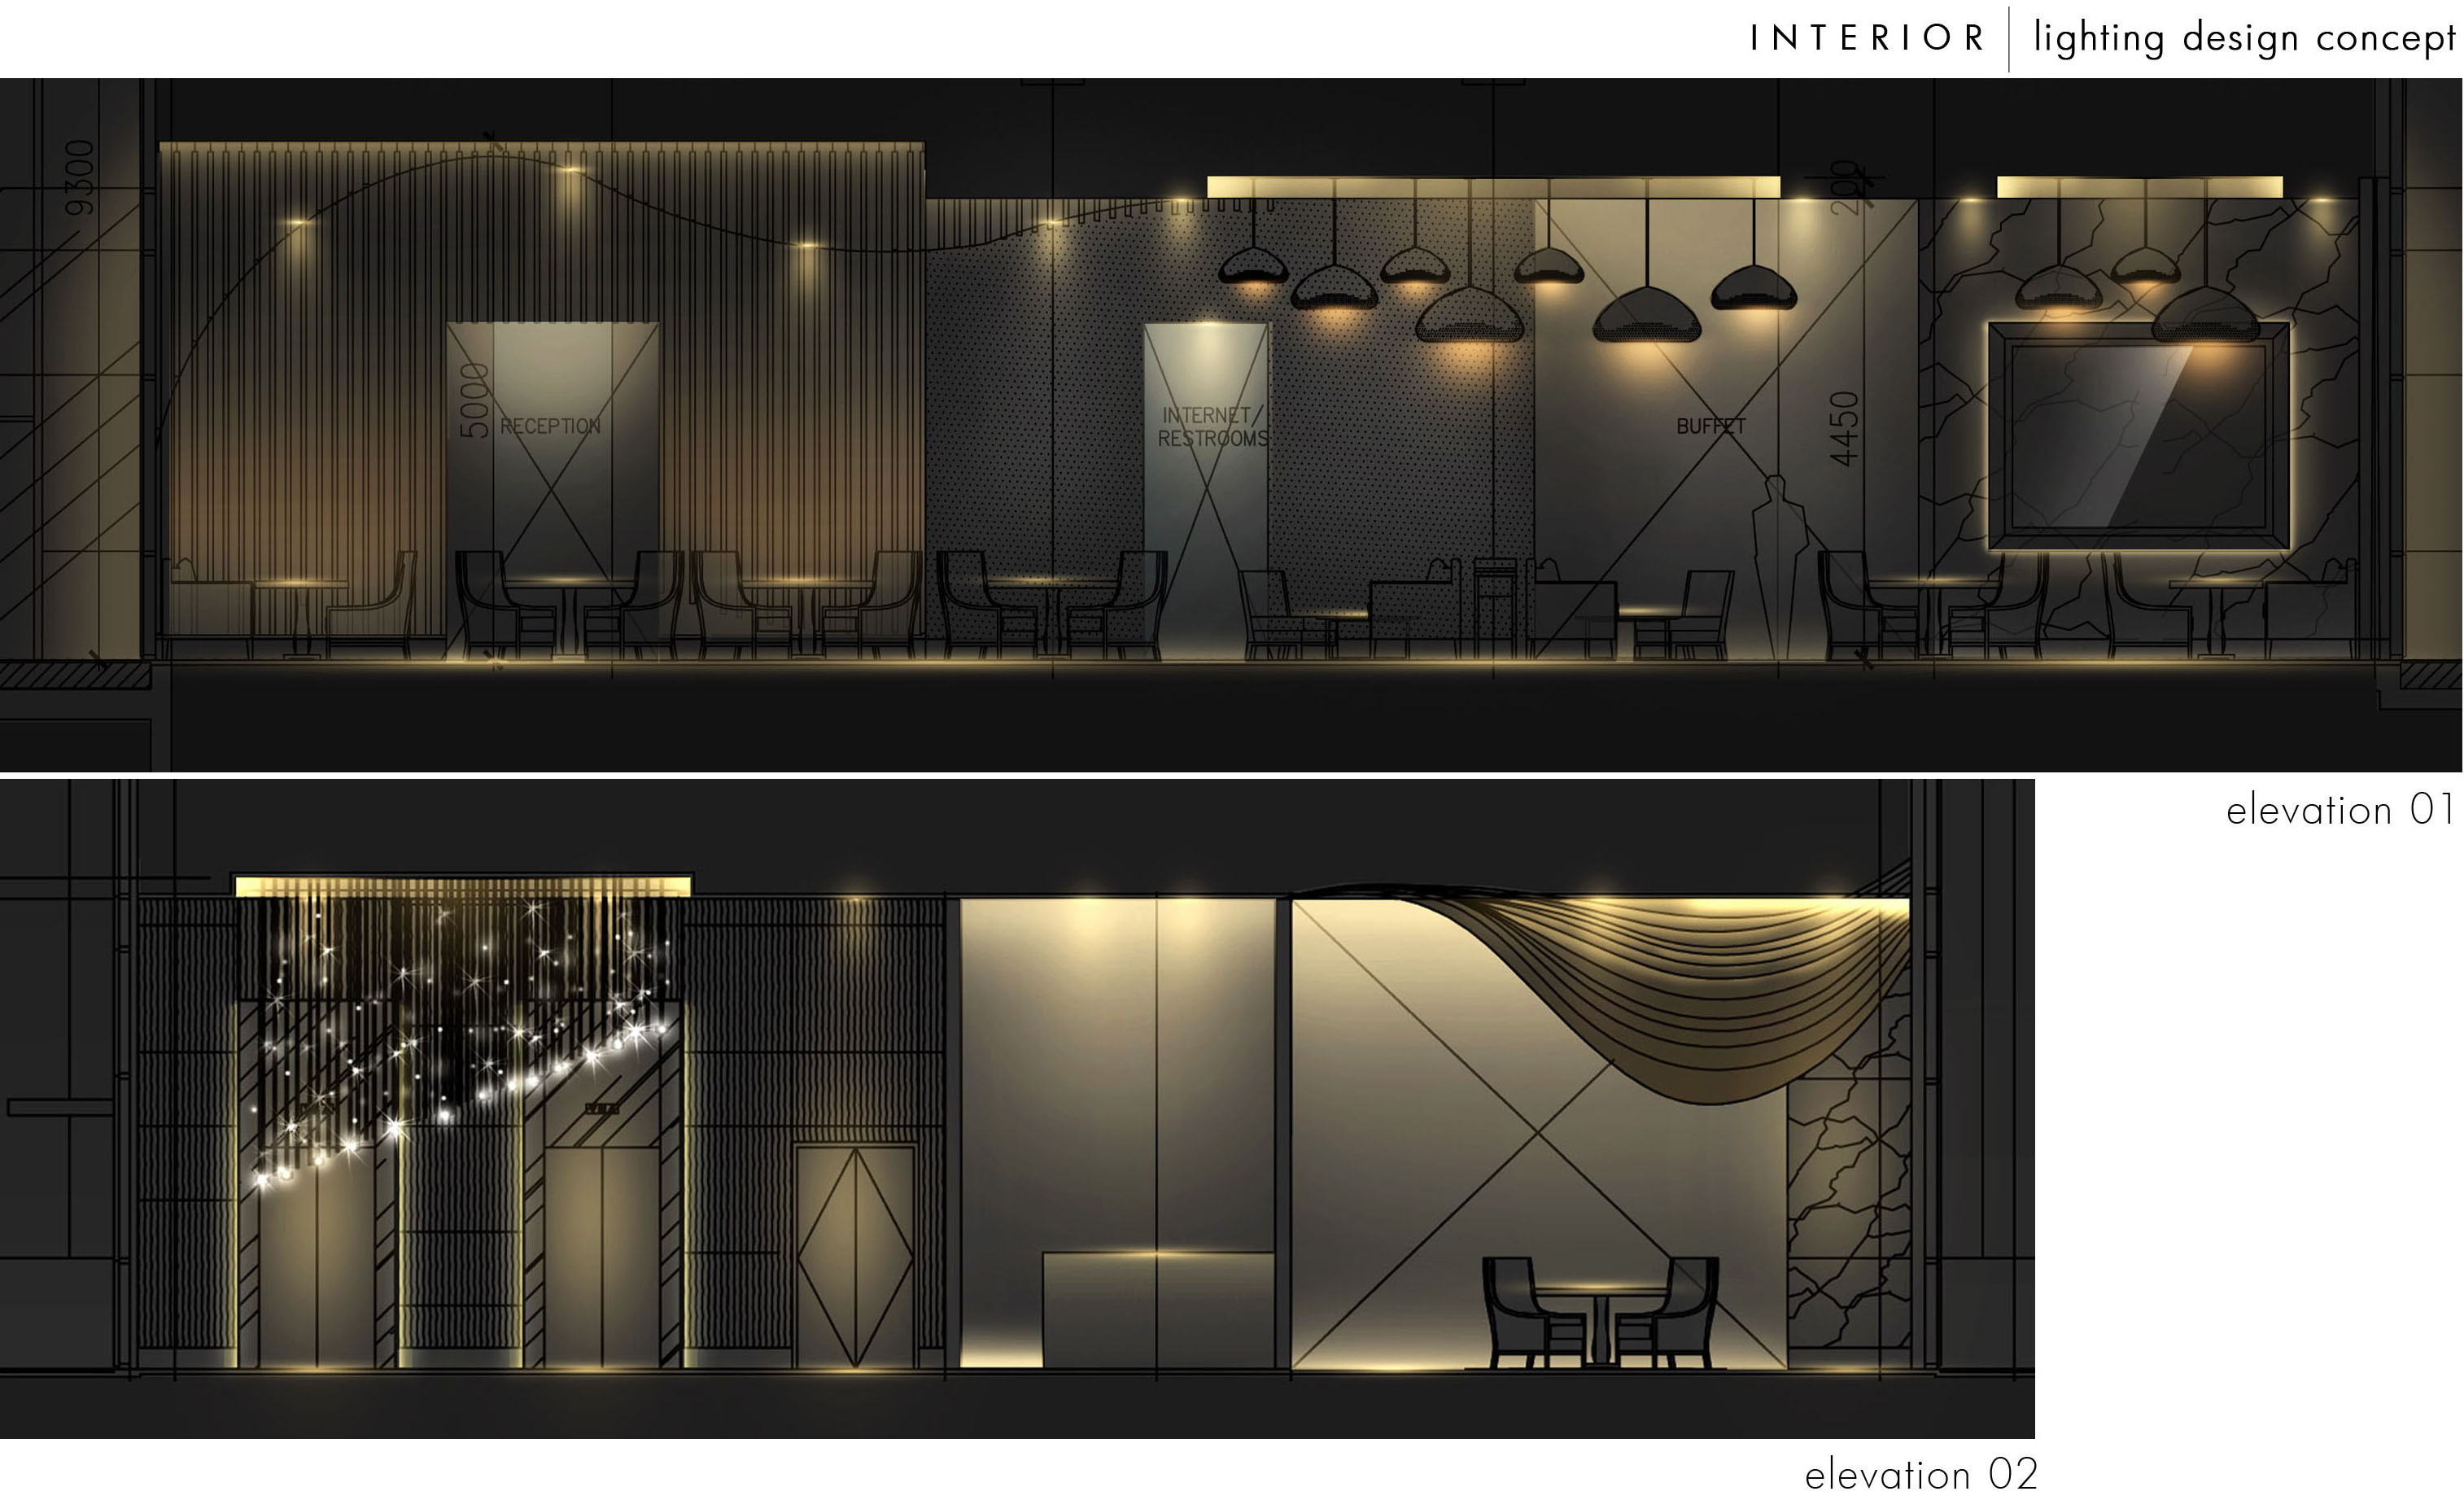 Interior lighting design by steven kurniawan at for Interior design house elevation